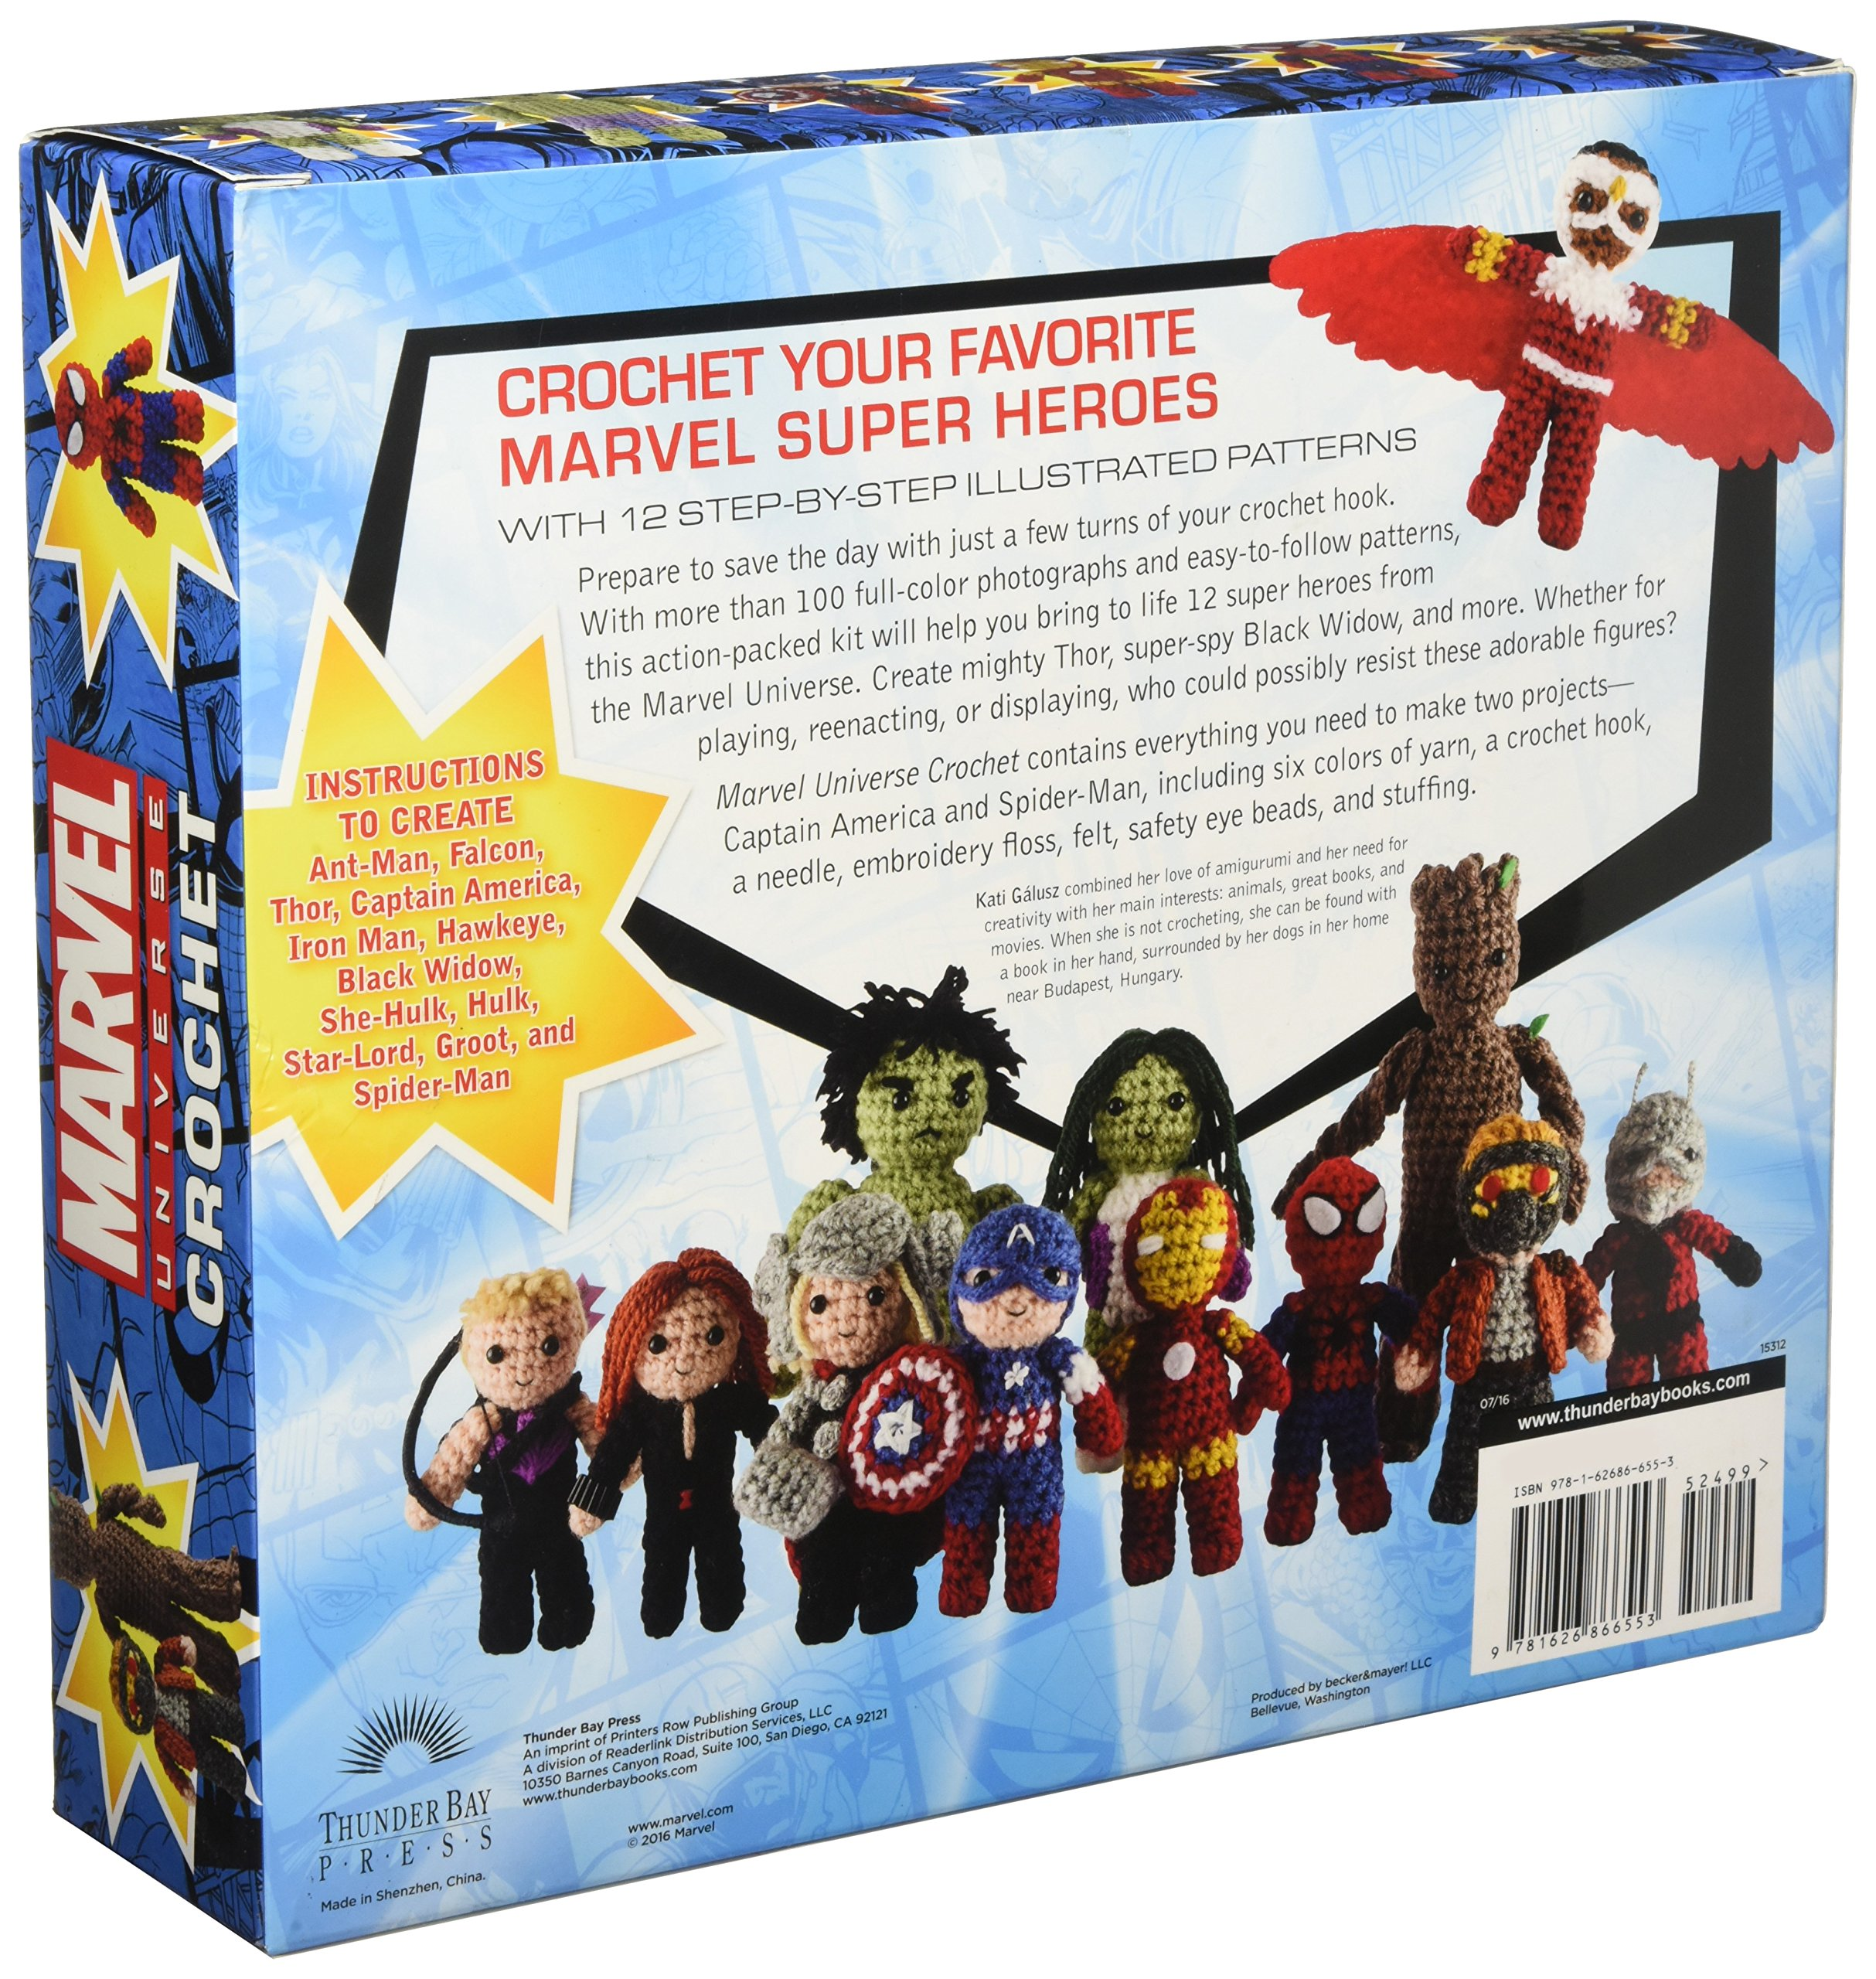 Marvel Universe Crochet Kati Galusz Amazoncom Books - Superheroes re imagined as if they were sponsored by big brands